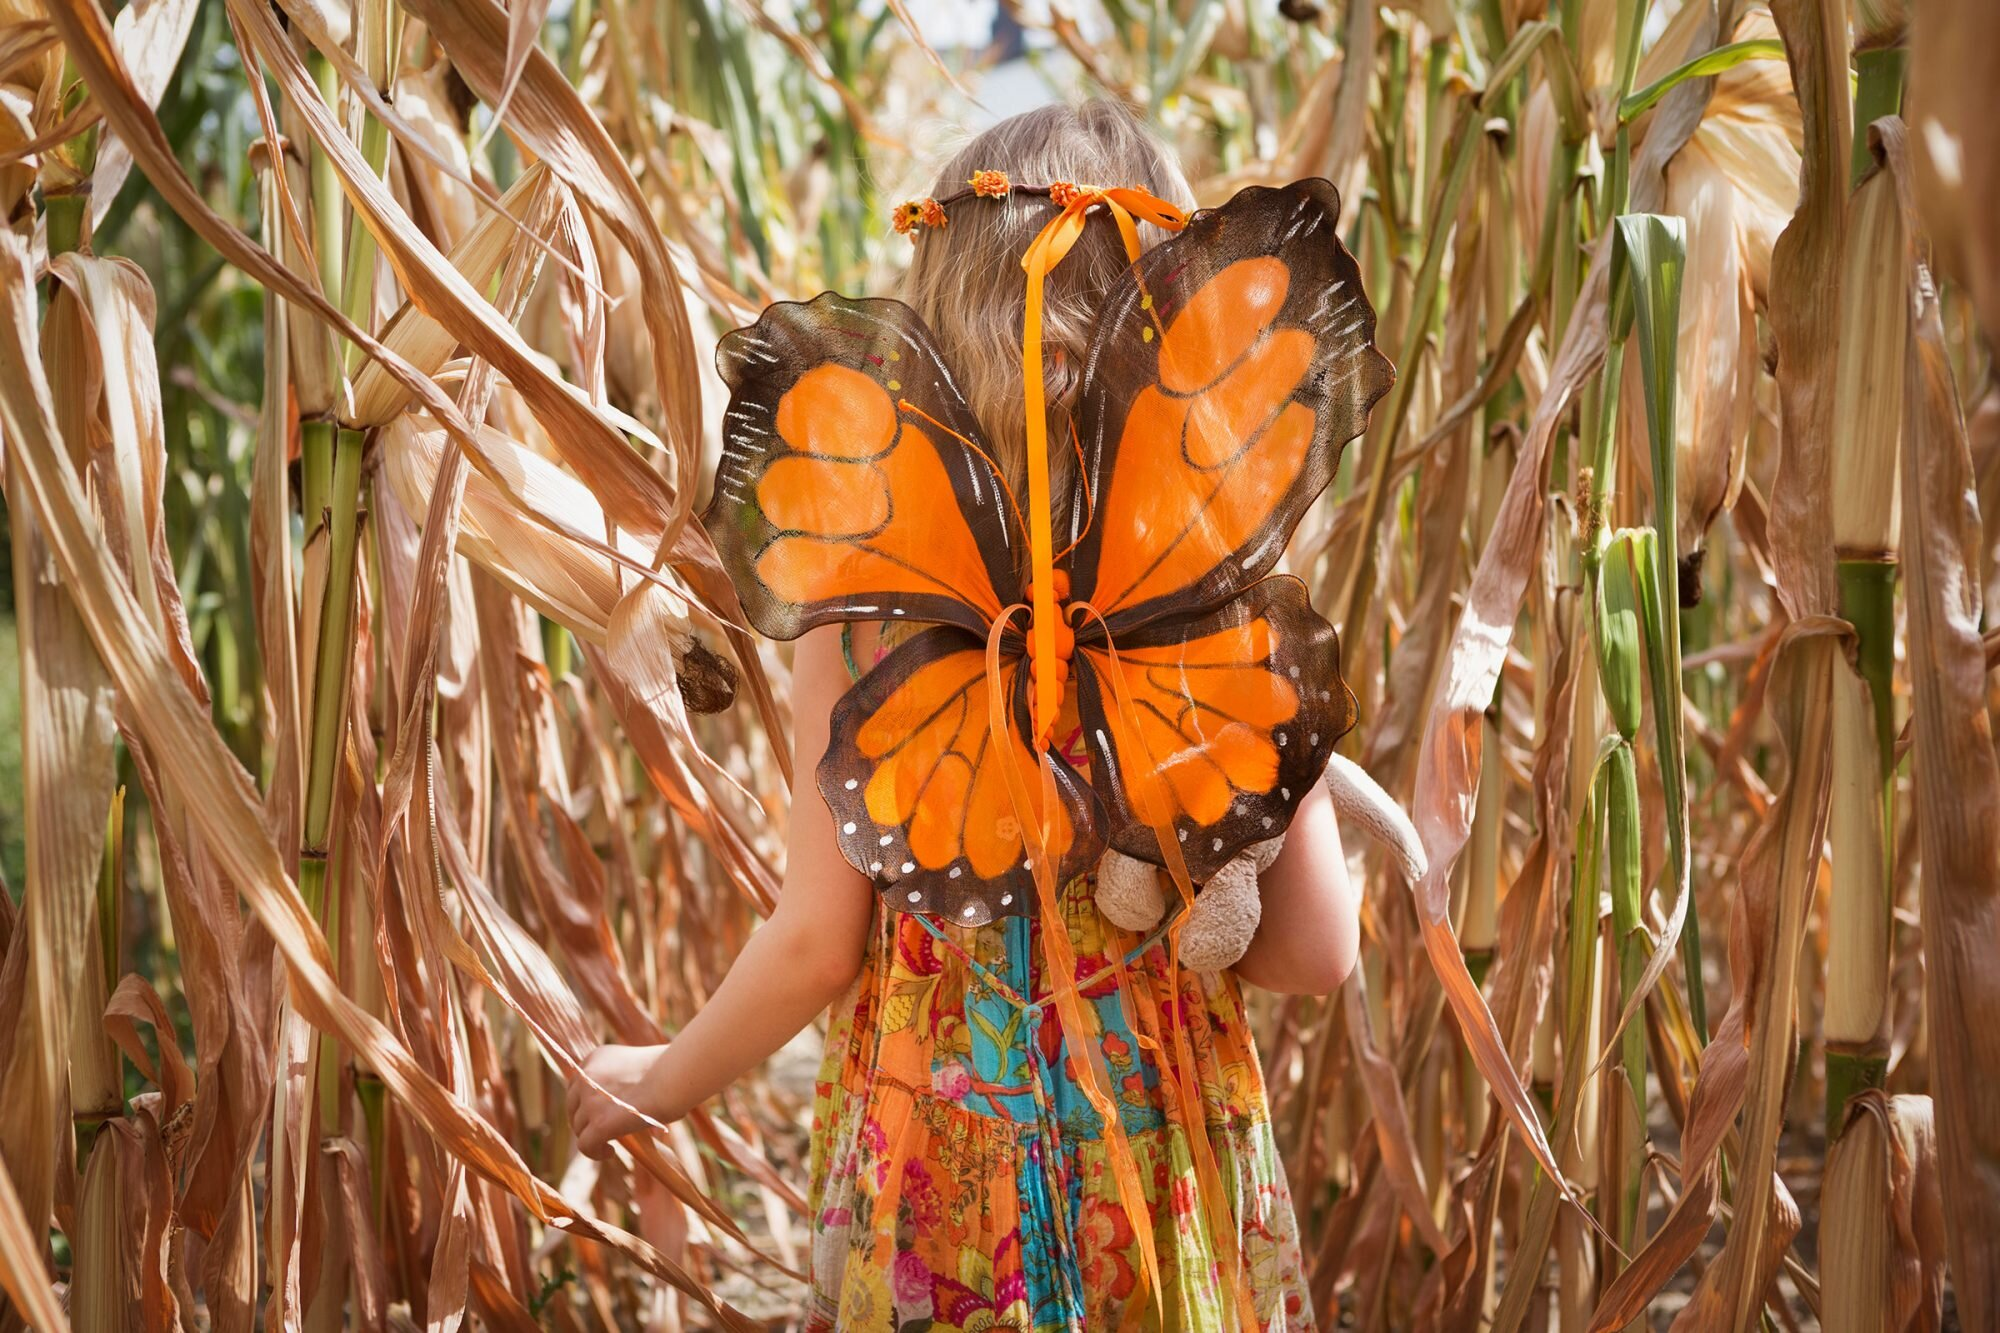 Child wearing orange butterfly wings in a field of tall dried maize